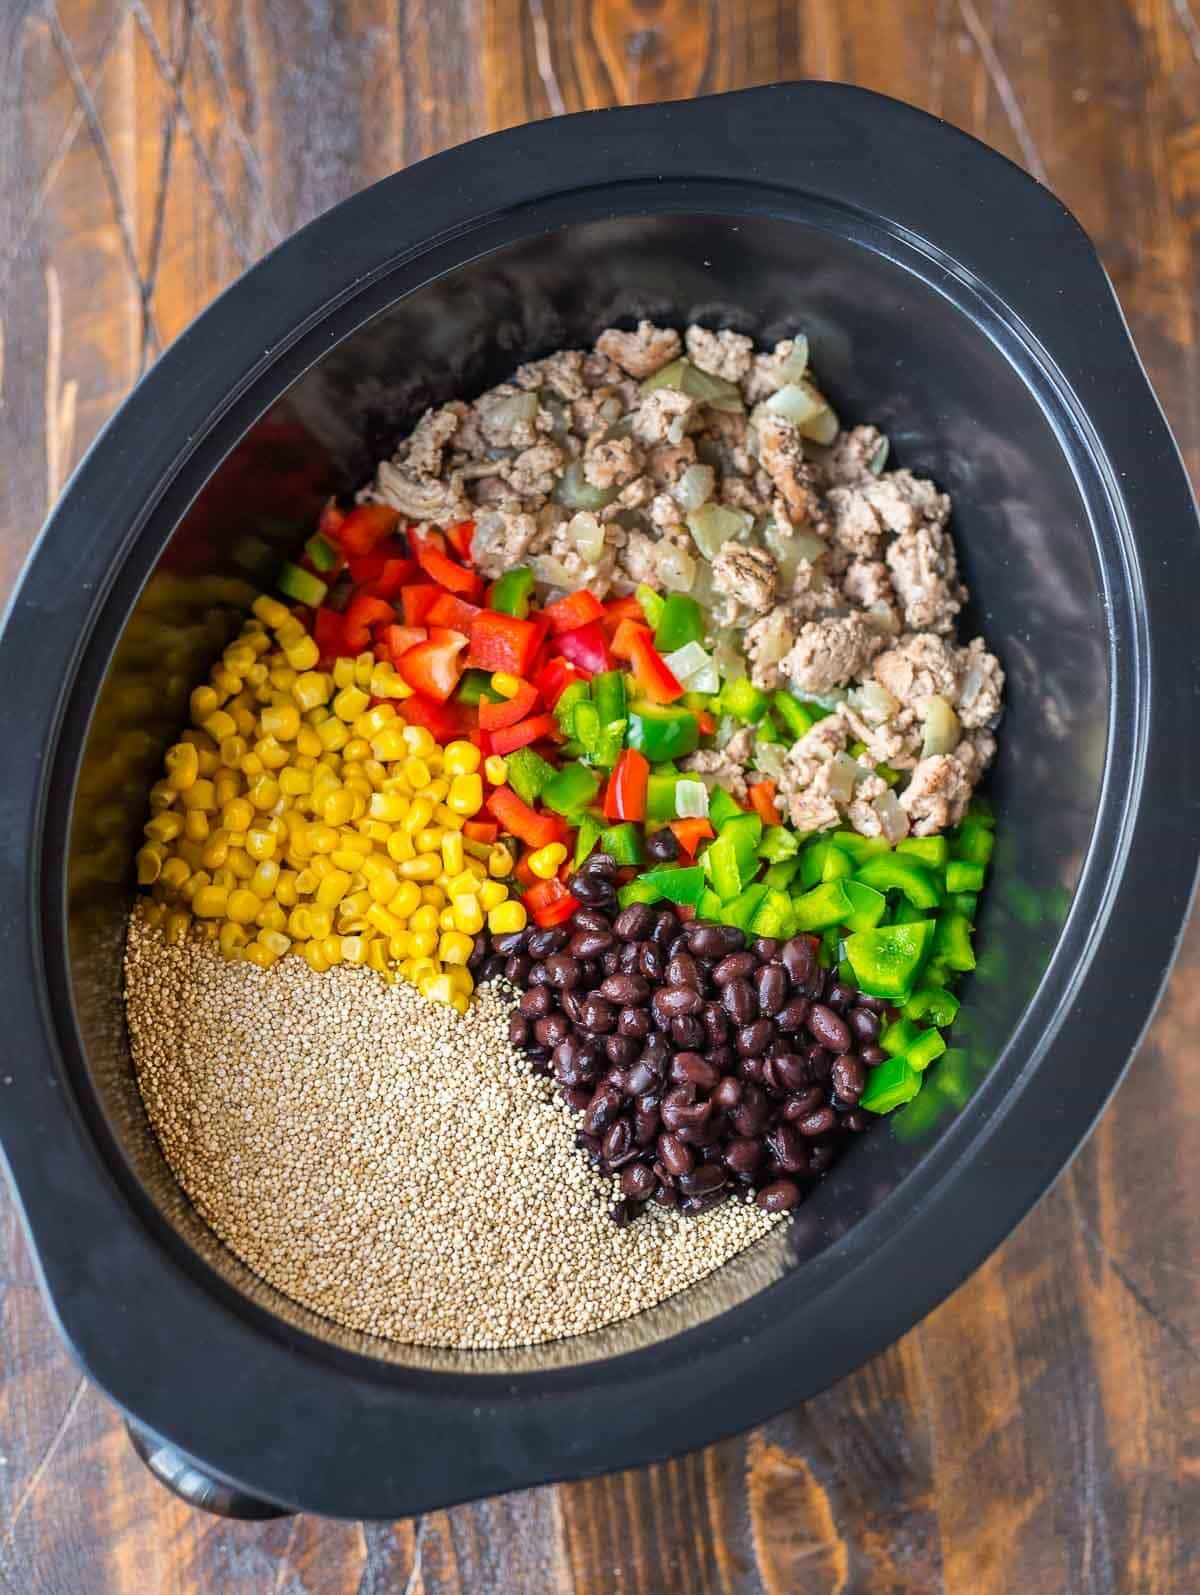 Crock Pot Mexican Casserole with Quinoa, Black Beans, and Ground Turkey. An easy, healthy slow cooker recipe. Gluten free, healthy comfort food!